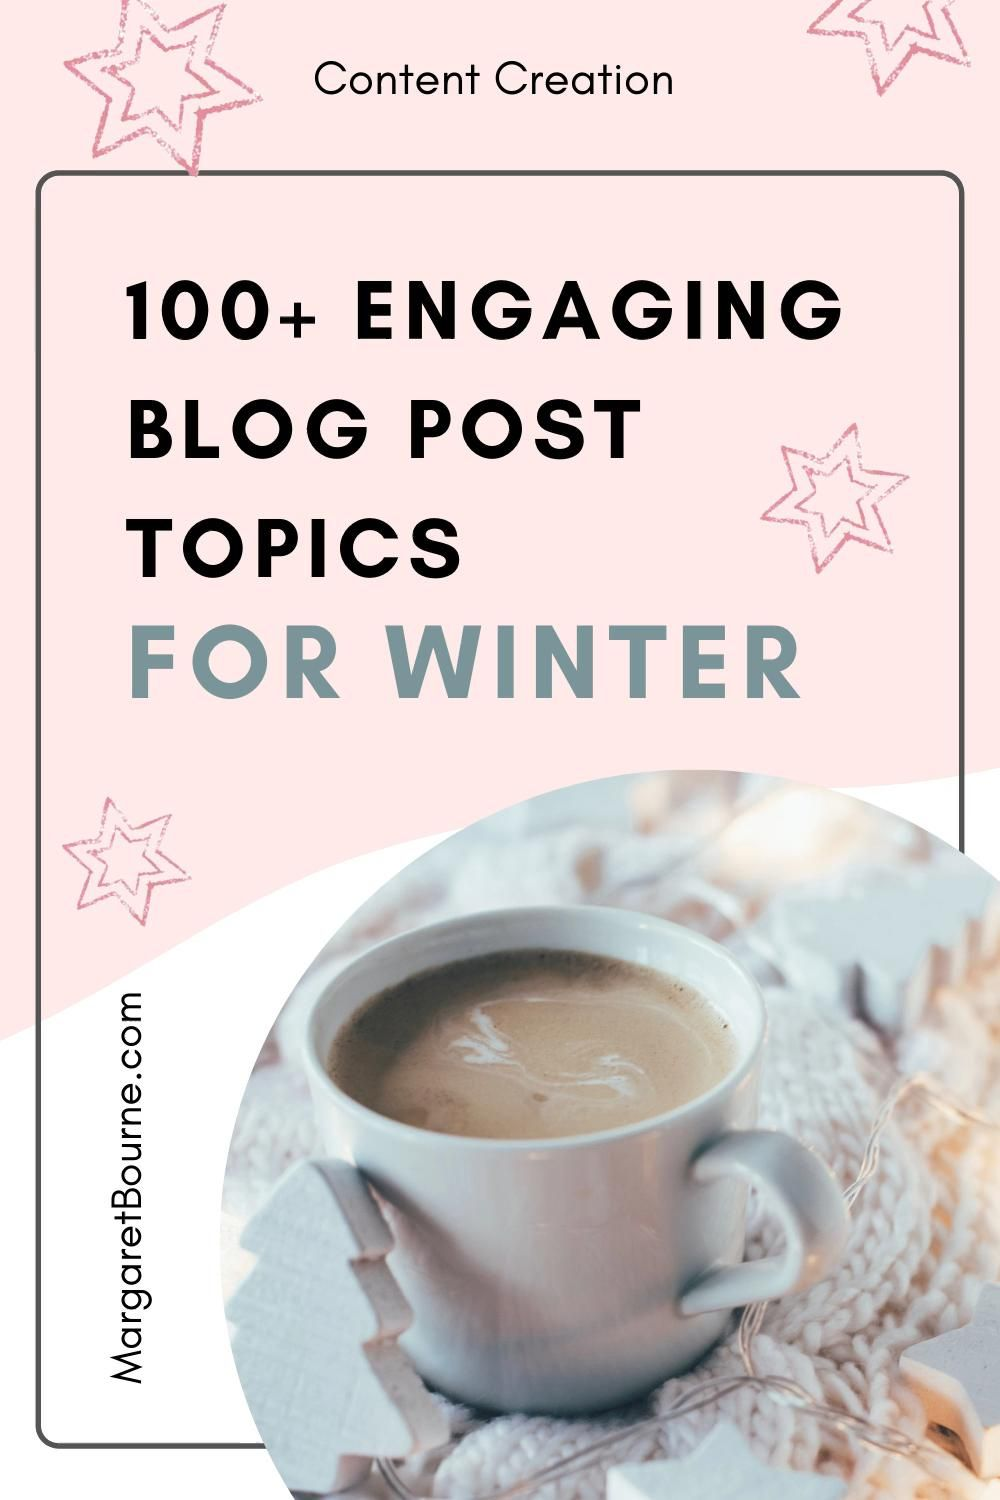 Need some inspiration for winter blog post topics for your lifestyle blog? With general winter blog post ideas and additional ones based on the parenting niche, fashion niche, and more, there are ideas for every type of lifestyle blog. #winter #bloggingtips #blogtips #bloggingforbeginners #blogpostideas #contentcreation #content   blog post ideas for winter